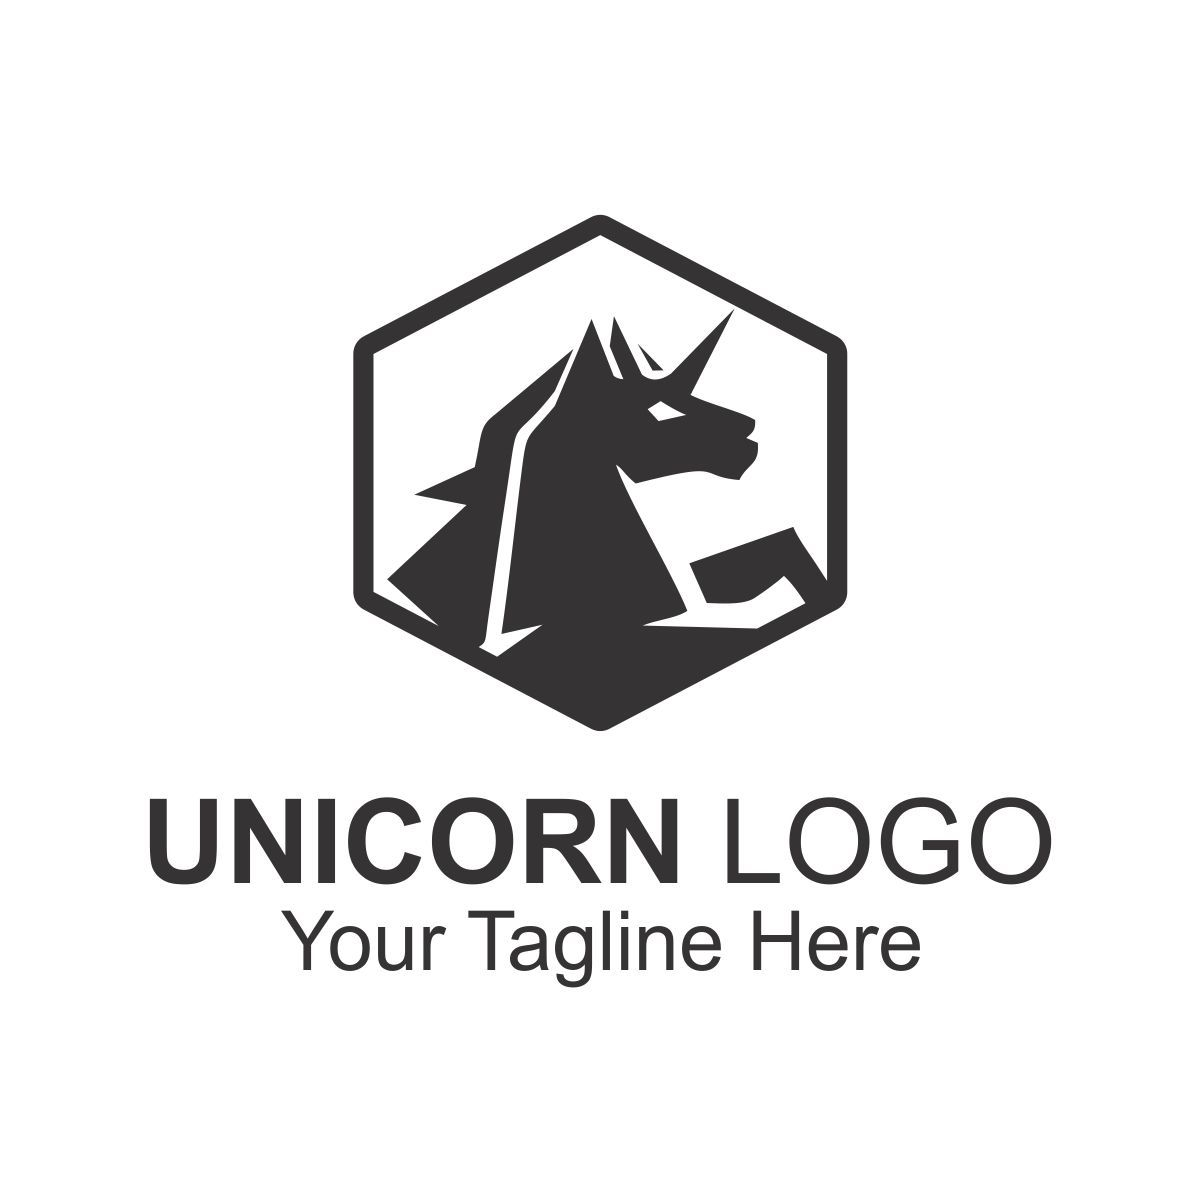 Unicorn Logo Screenshot 1